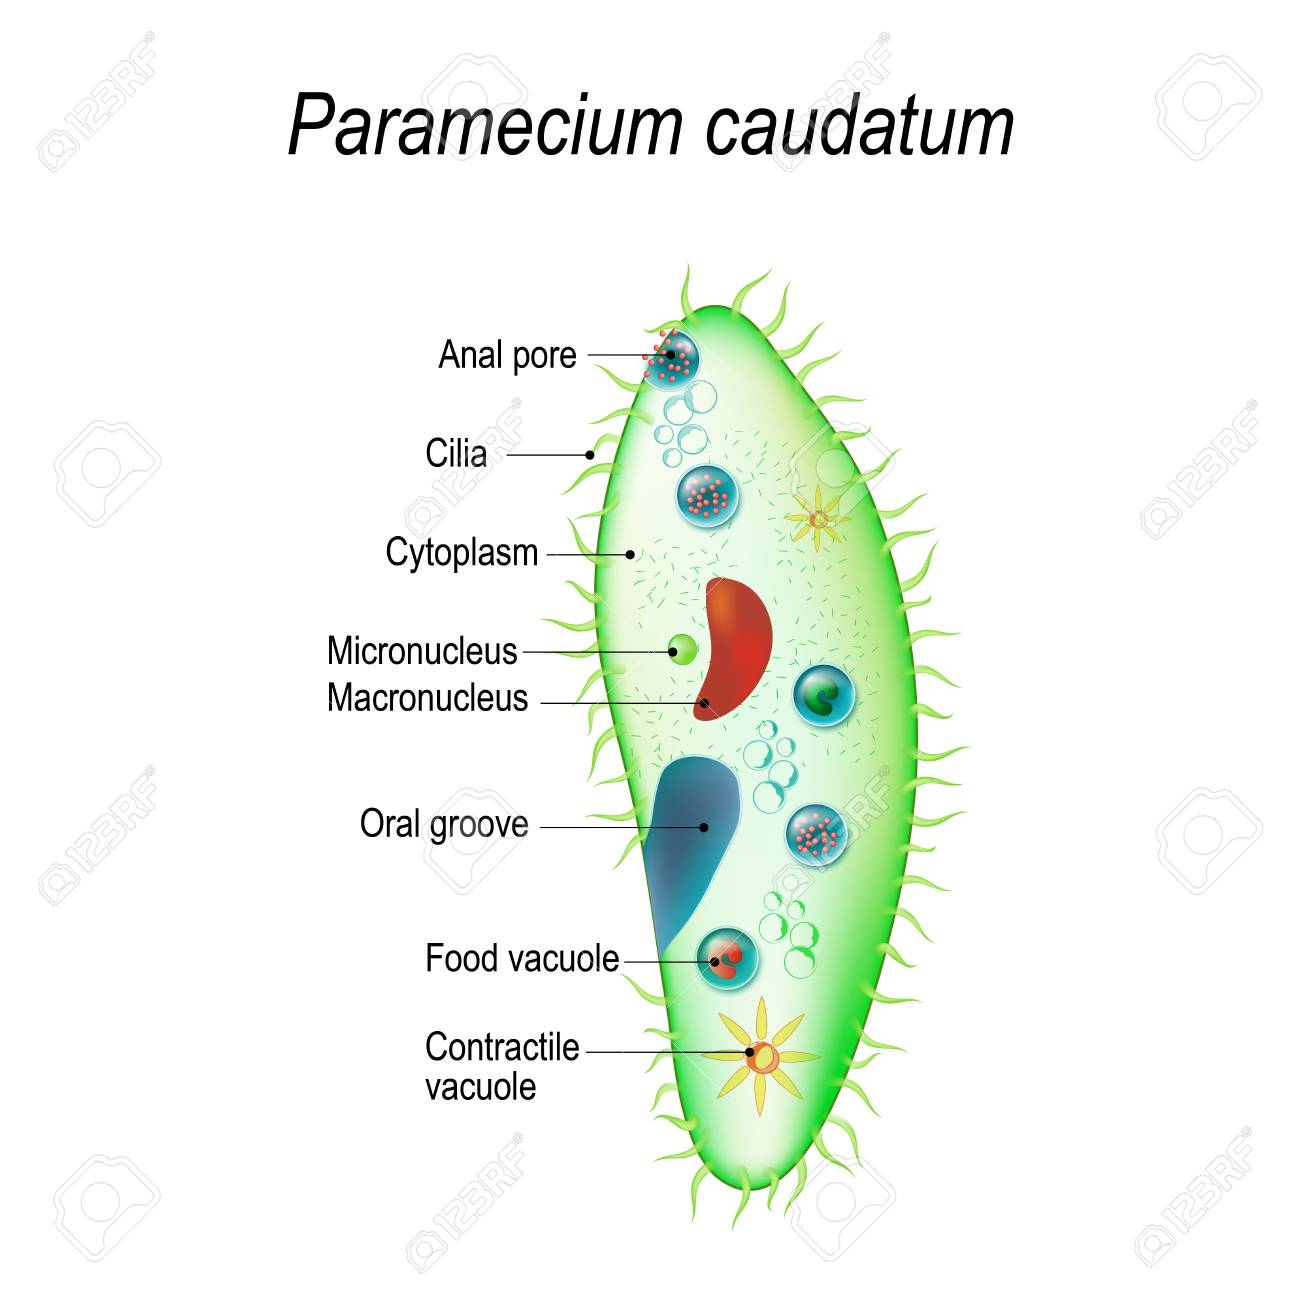 hight resolution of structure of a paramecium caudatum vector illustration for educational and science use stock vector